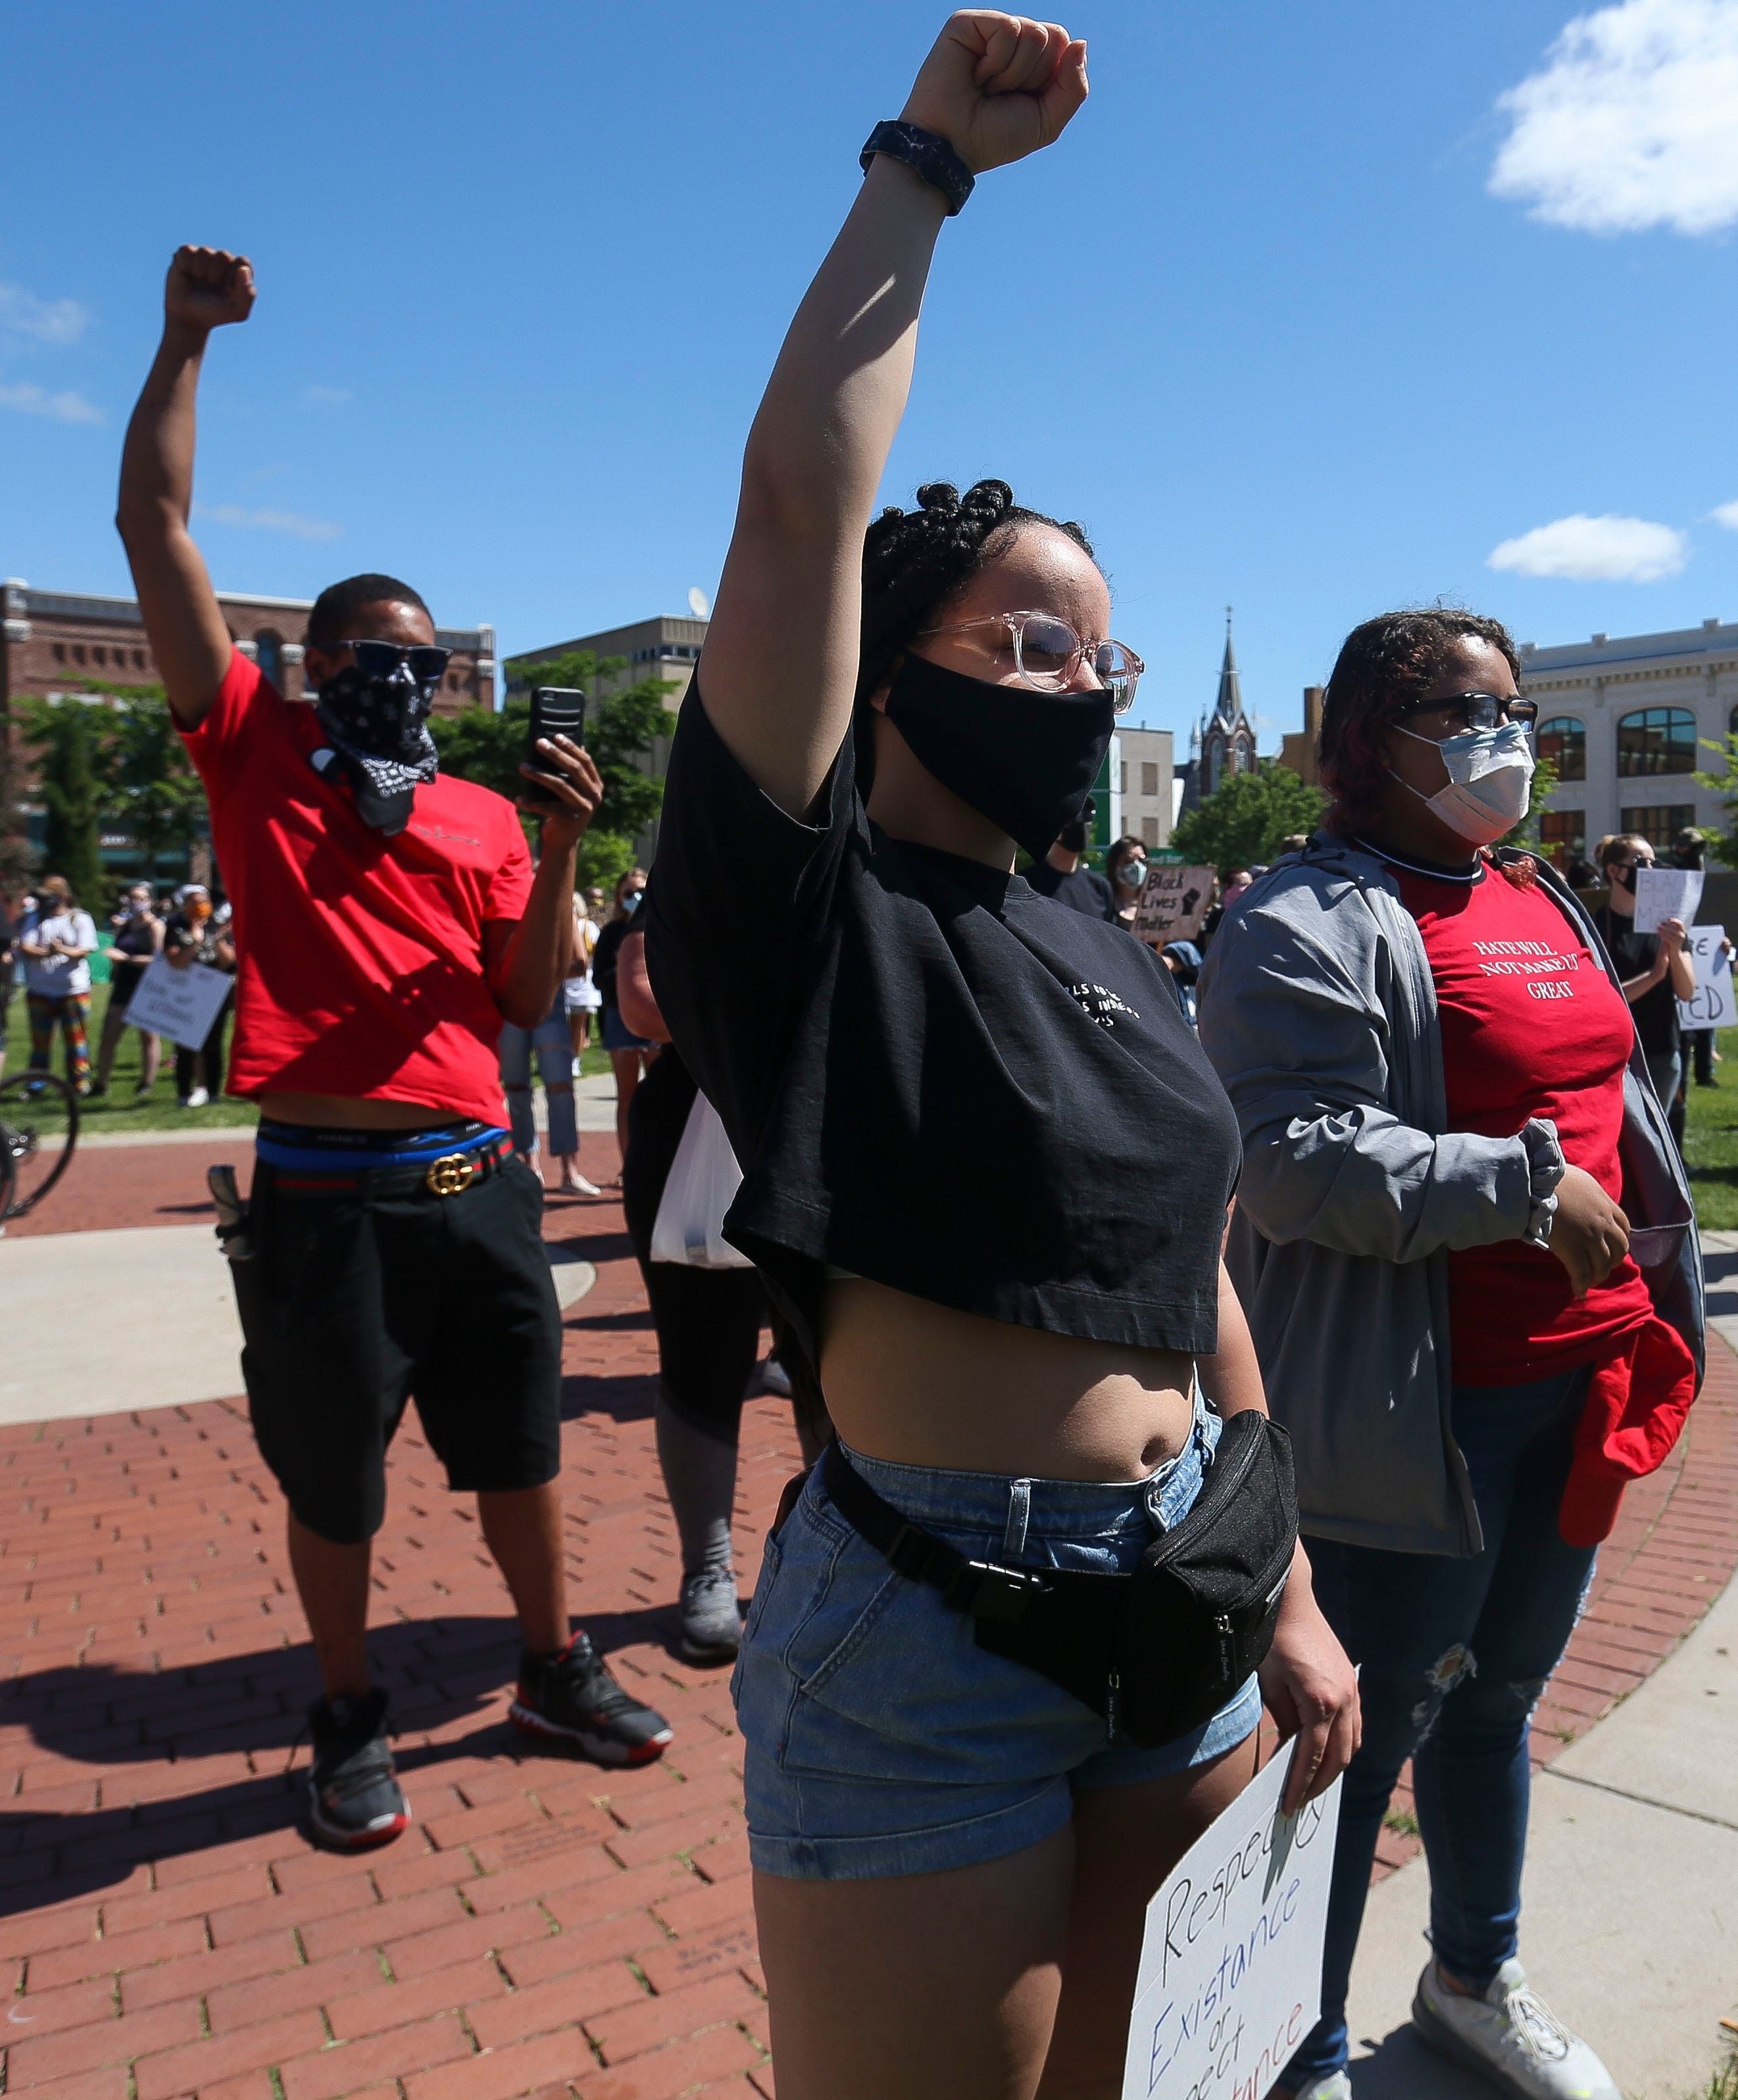 Protester Makenzie Yach raises her fist in solidarity prior to a march on Saturday, June 6, 2020, at  in Wausau, Wis. Protesters gathered and marched in response to George Floyd's death in police custody on May 25 in Minneapolis.Tork Mason/USA TODAY NETWORK-Wisconsin